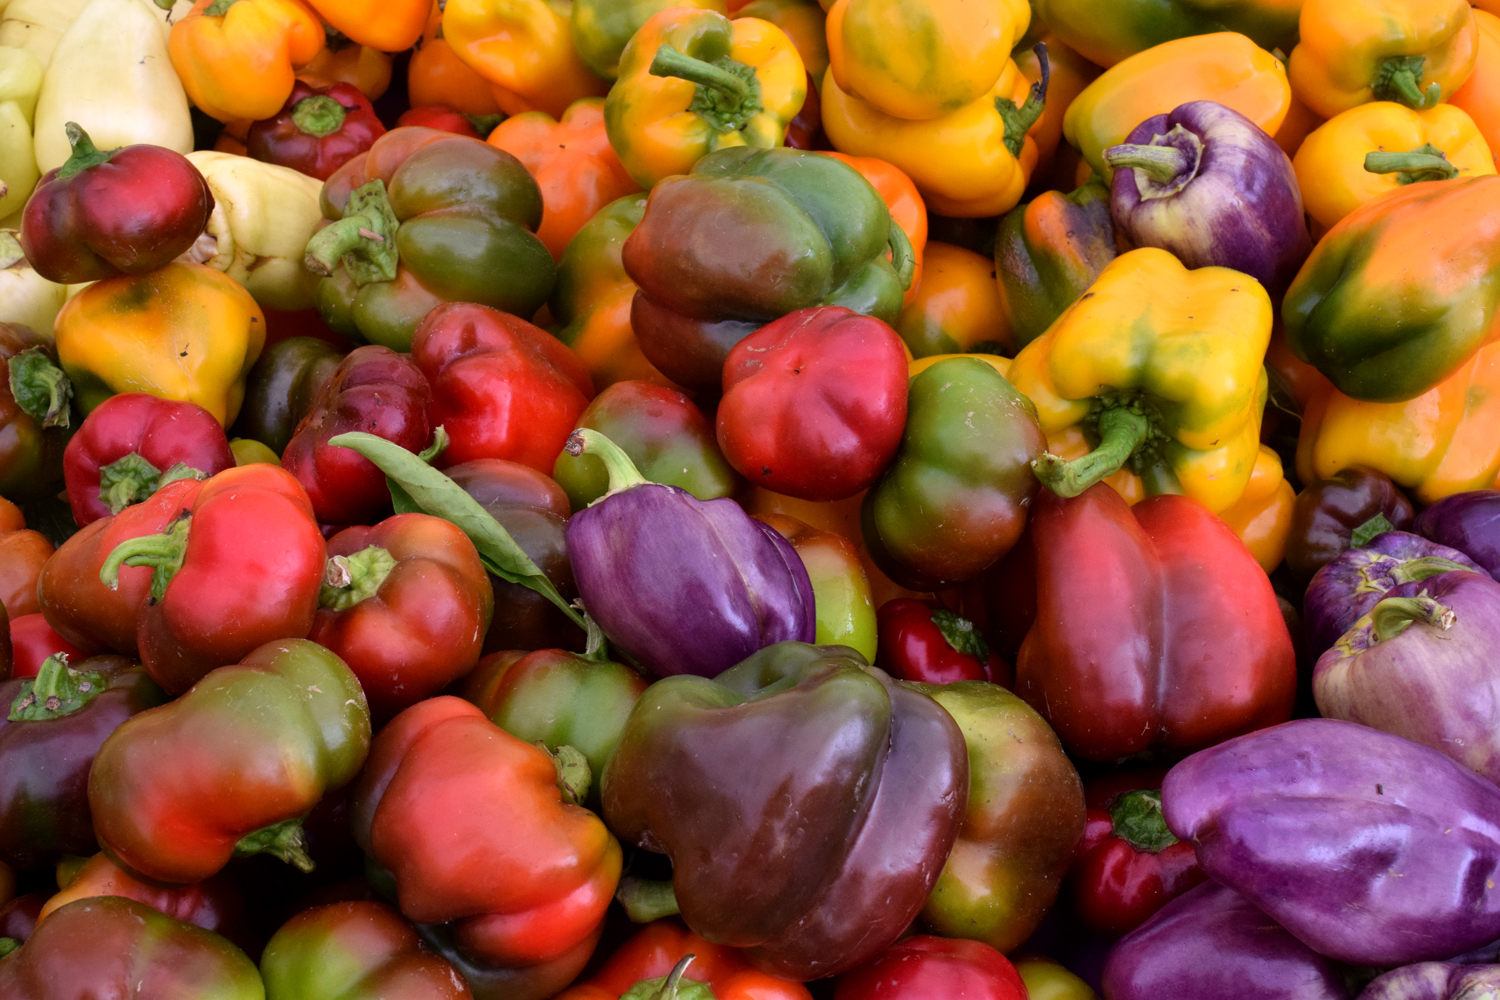 Late-Summer goodness at the Union Square Farmer's Market.